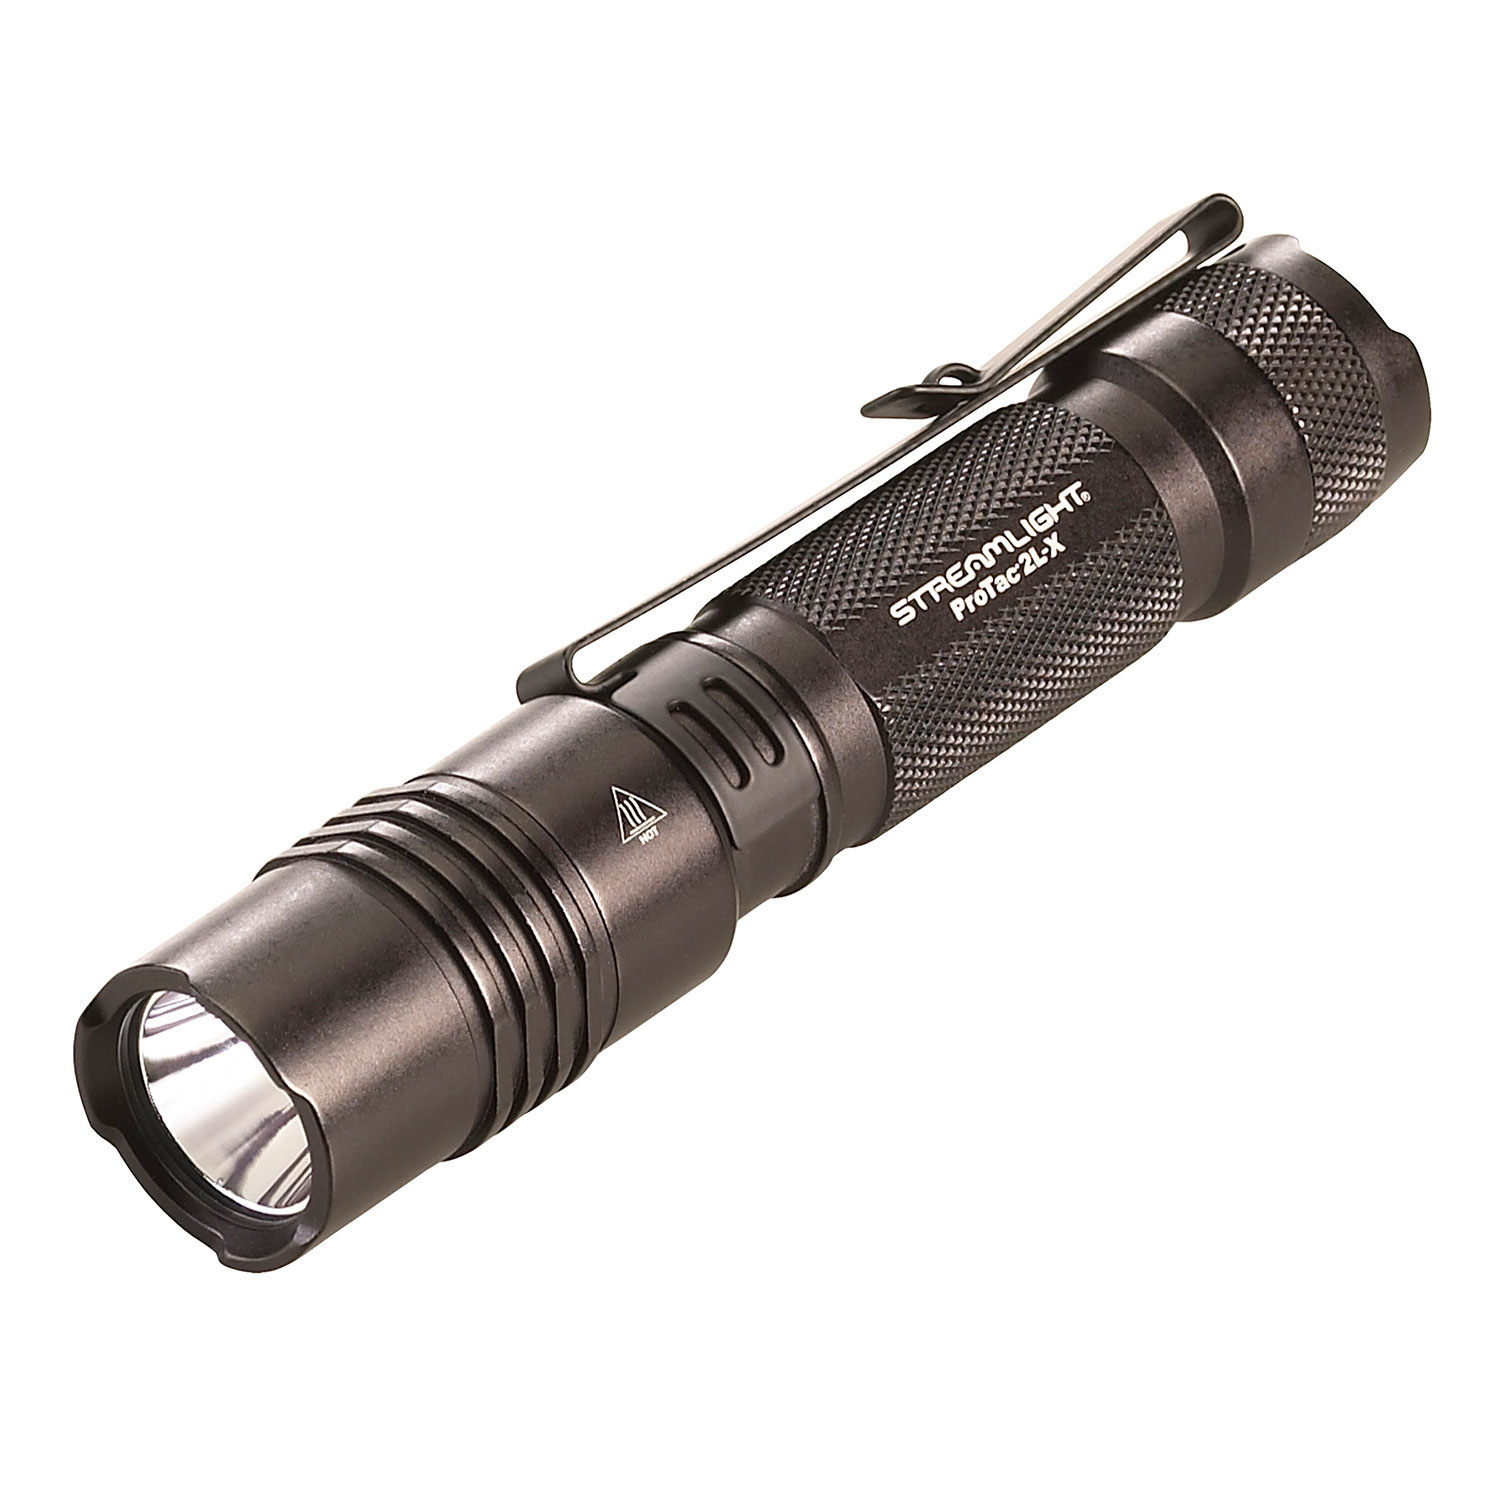 Streamlight ProTac 2L X Dual Fuel Tactical Light